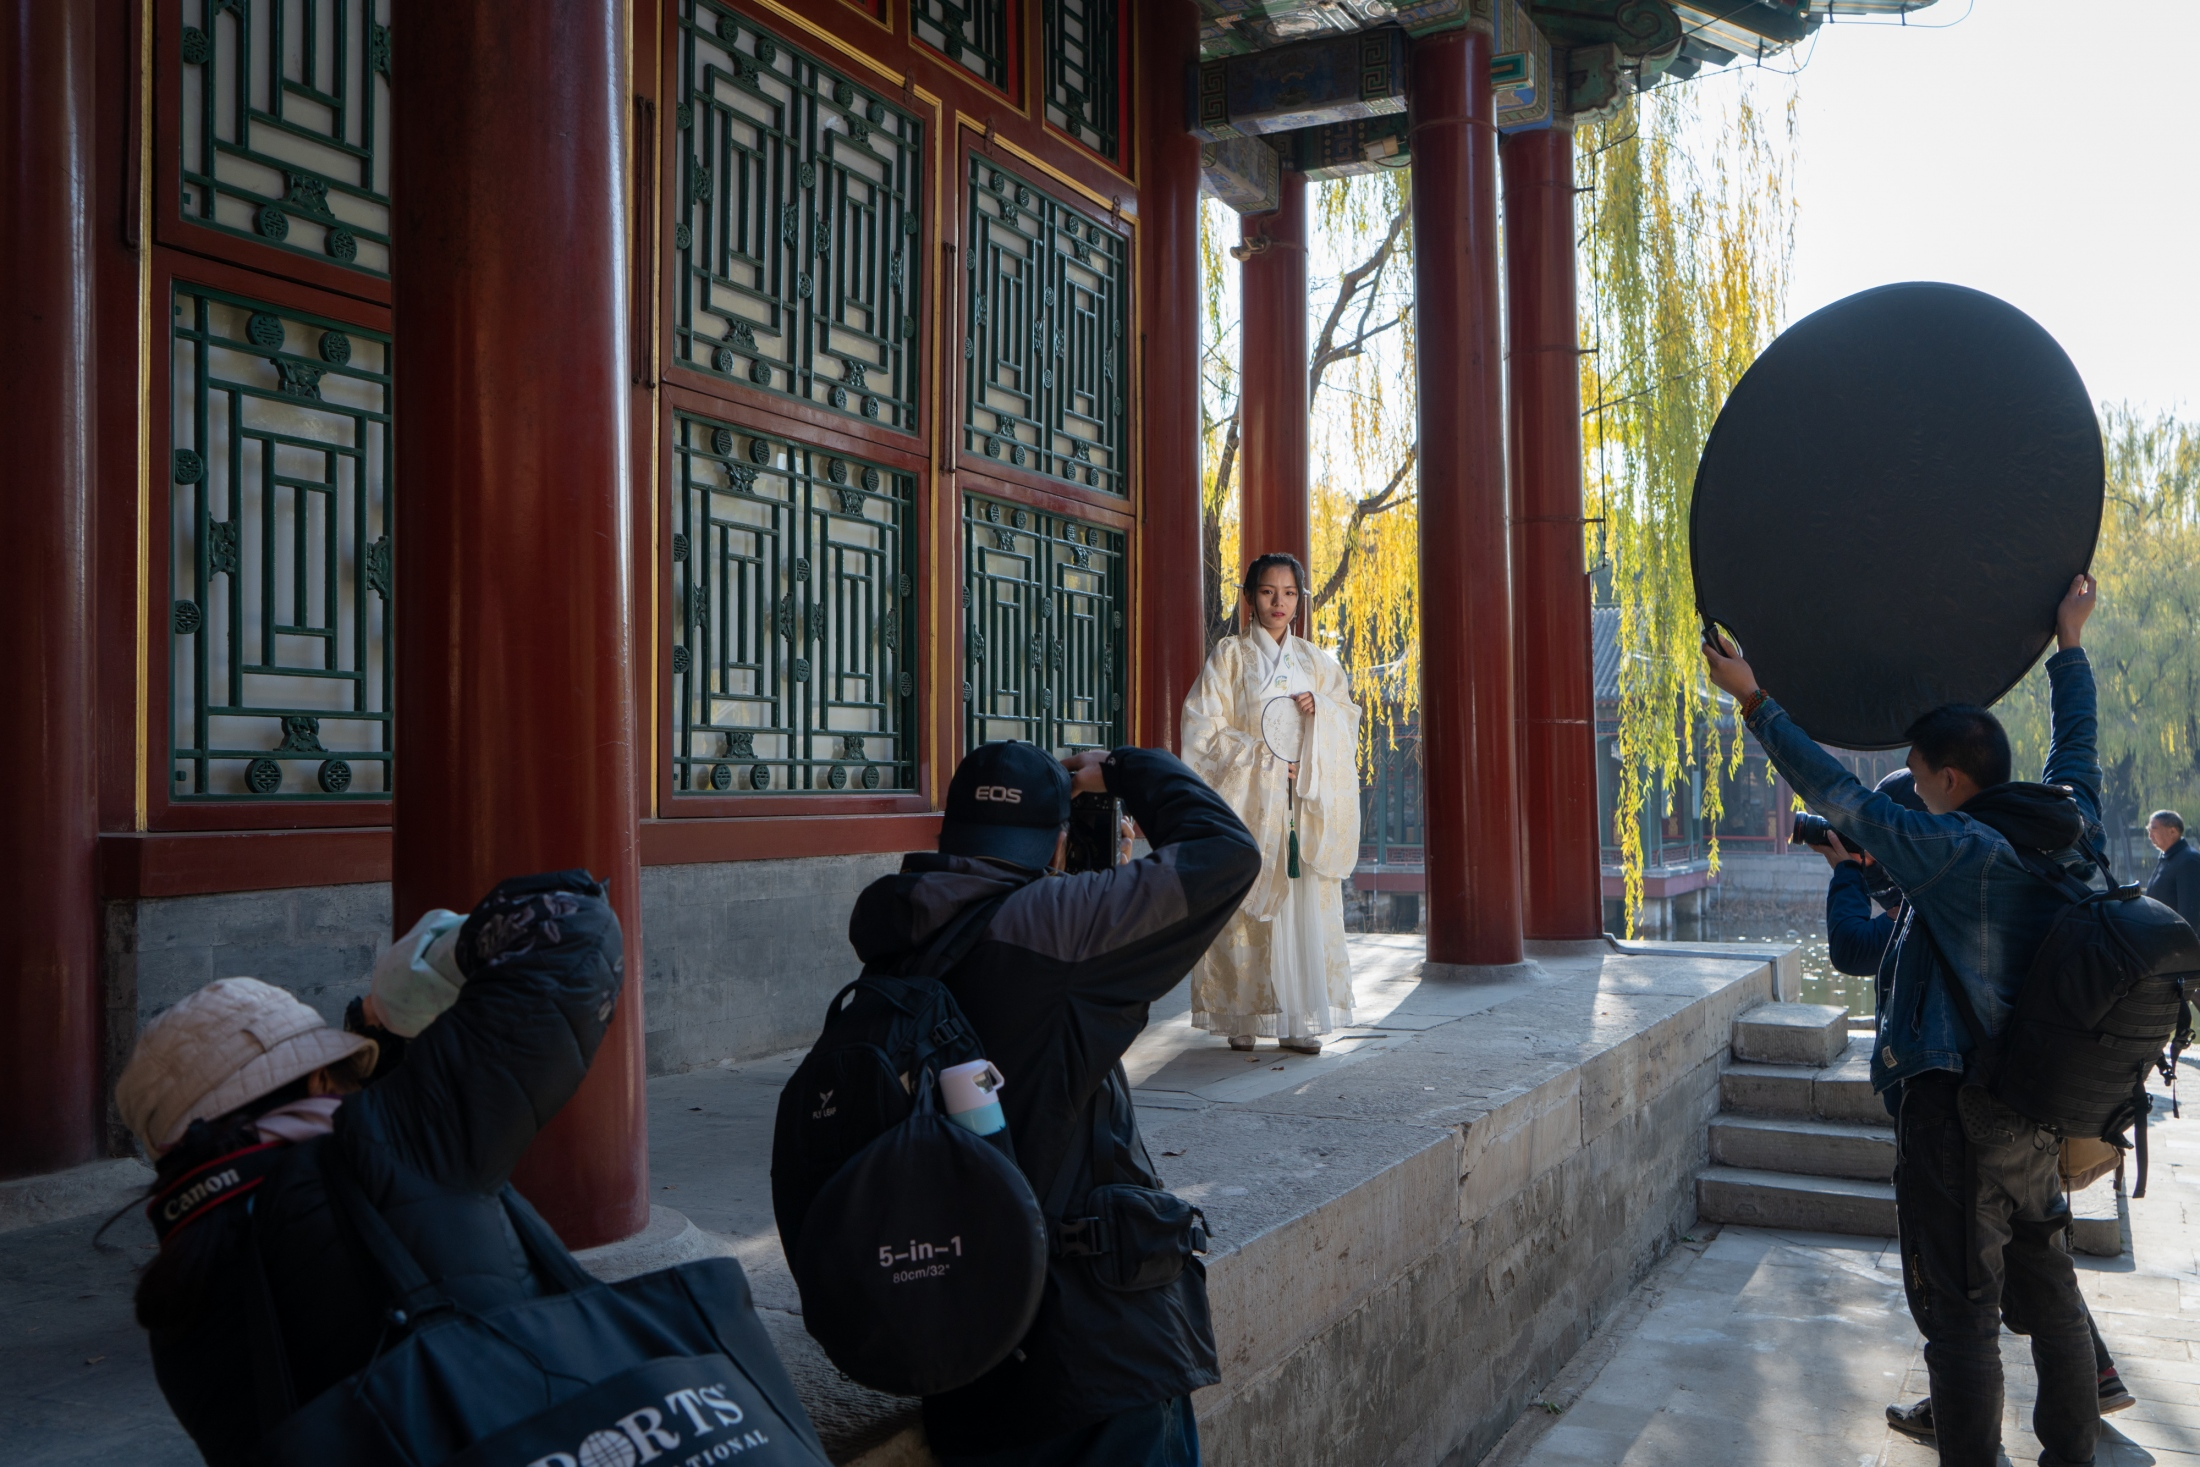 A woman in Hanfu-style attire posing for photographers this month in the Summer Palace in Beijing.